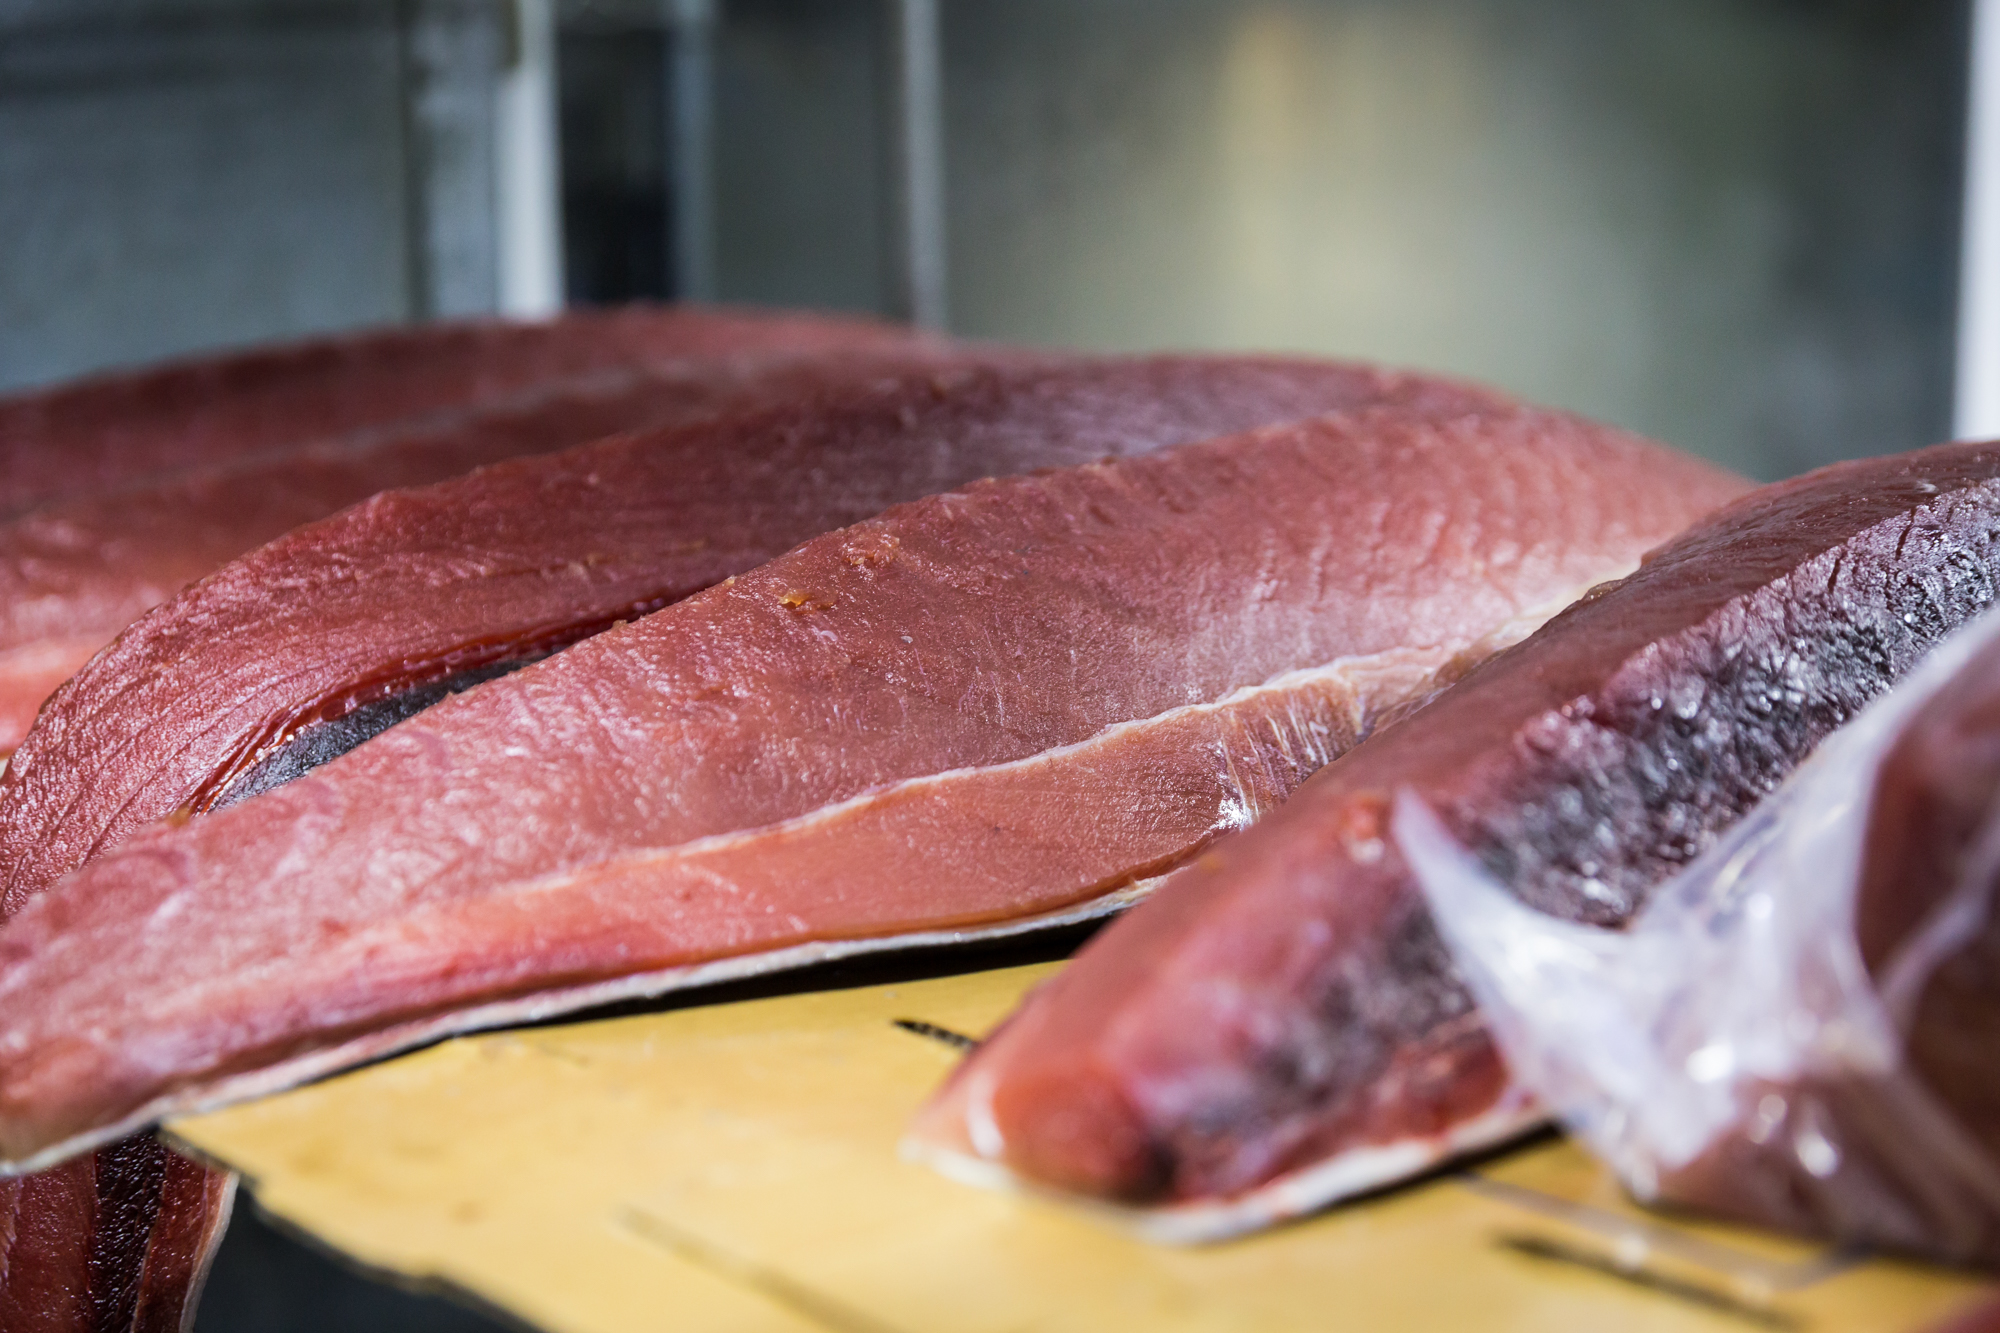 Tuna fish for an article on website photography tips